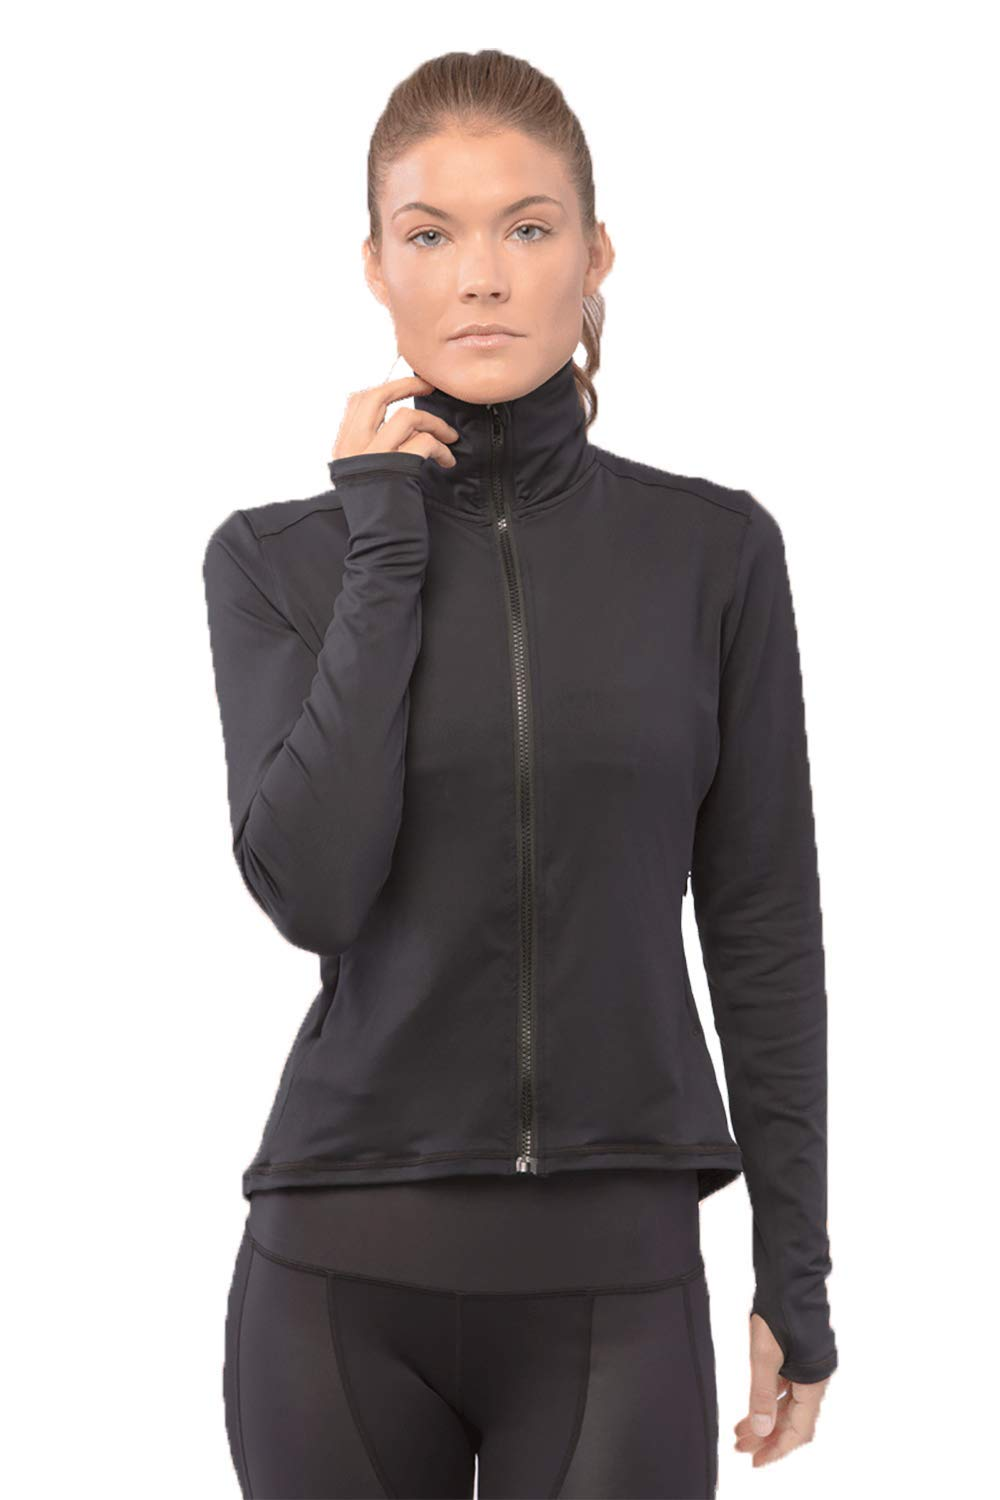 Just Live Alexa Running Jacket Women - Yoga and Workout Full Zip Lightweight Jacket with Zipper Pockets and Thumb Holes (Small, Black)